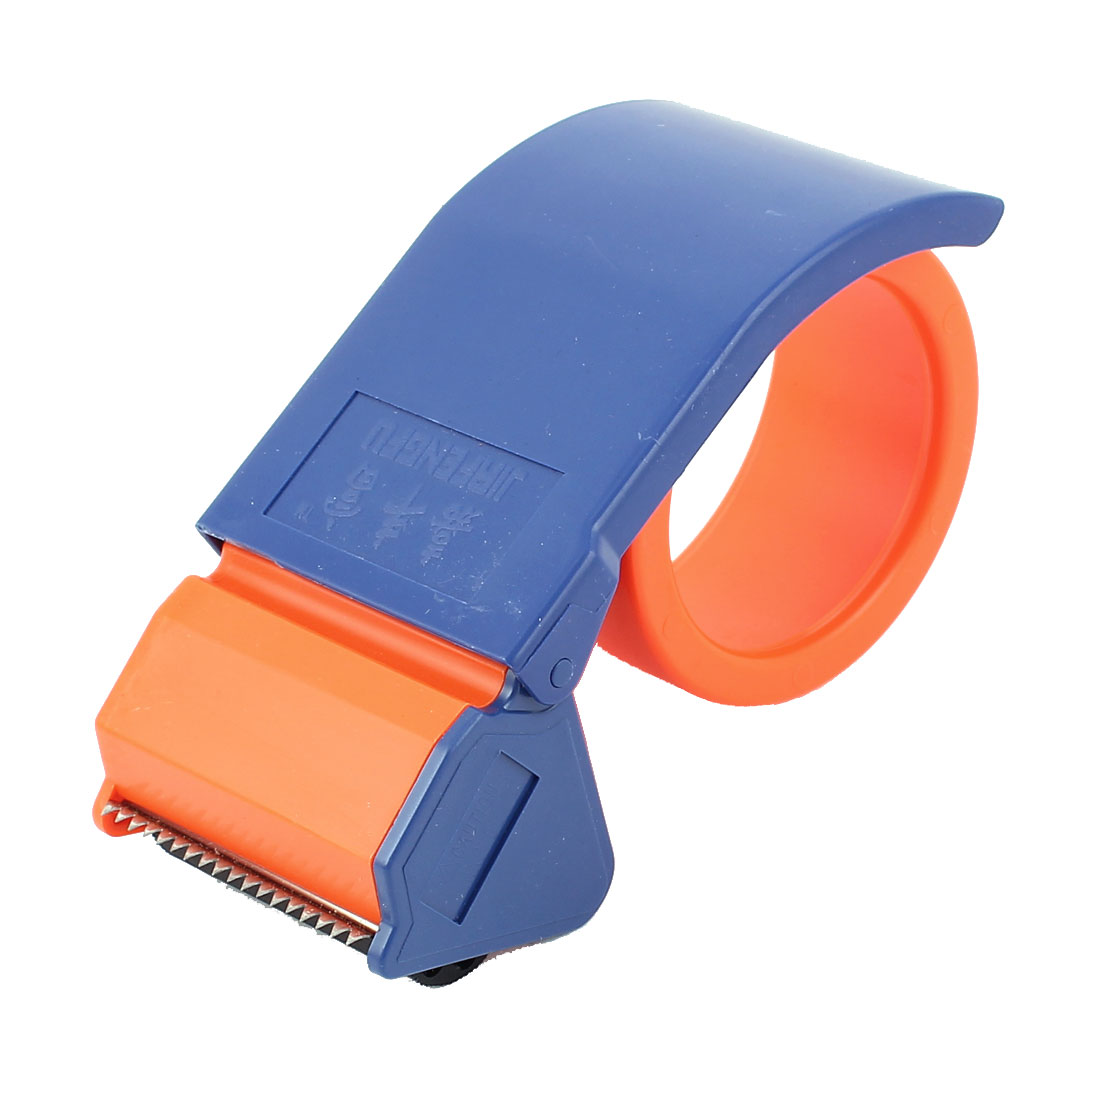 Plastic Packing Packaging Handheld Roller Tape Dispenser Blue Orange